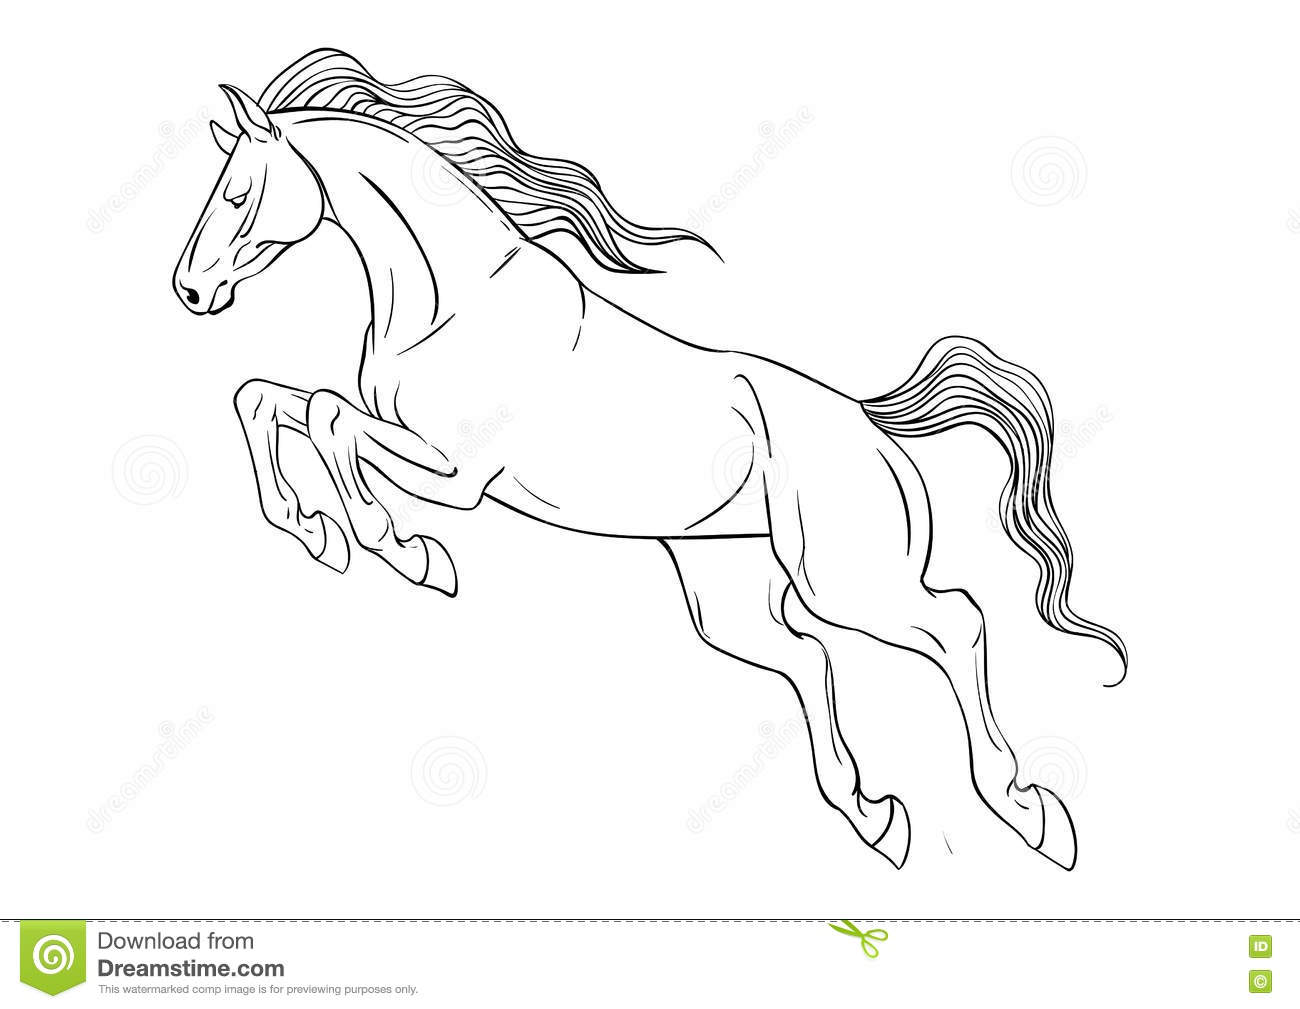 Coloring page with horse stock vector. Illustration of coloring ...